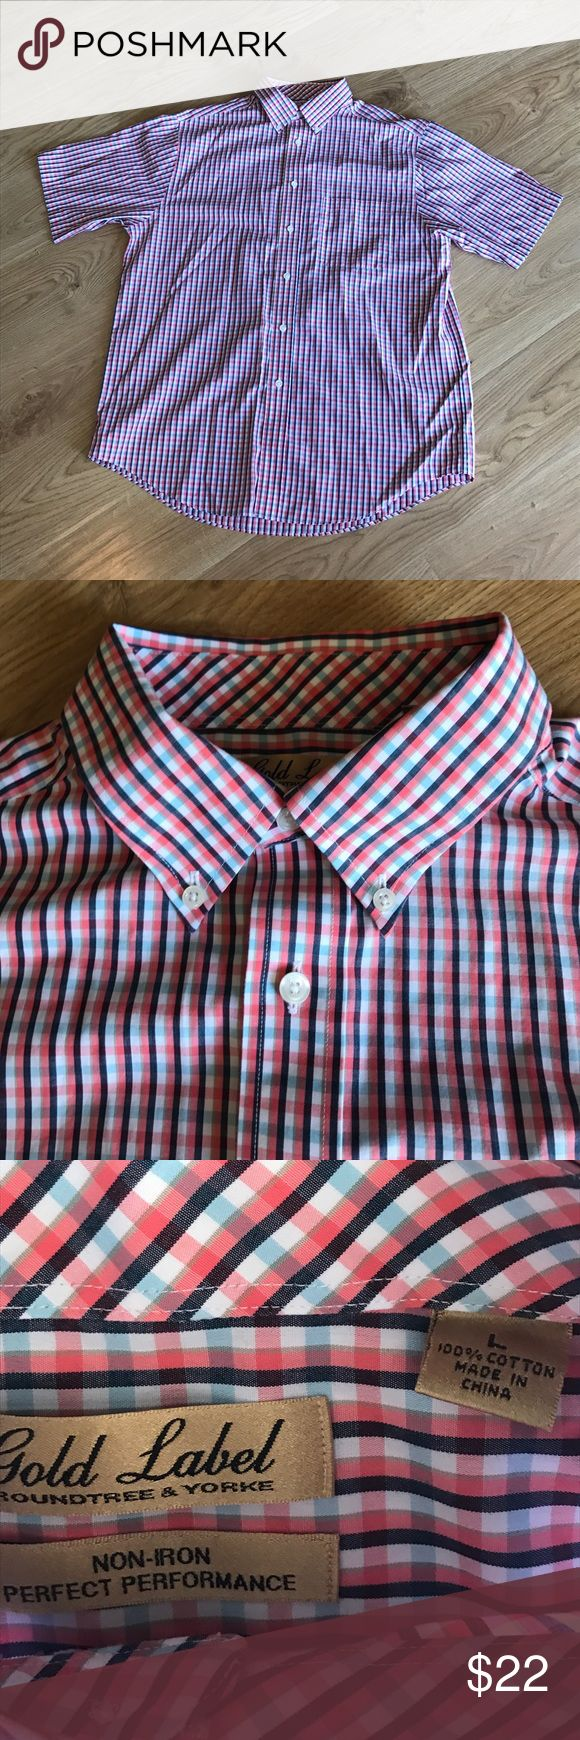 Men's plaid shirt sleeve shirt Handsome red,white and blue plaid shirt size Large. Excellent condition and from a smoke free home. Roundtree & Yorke Shirts Casual Button Down Shirts